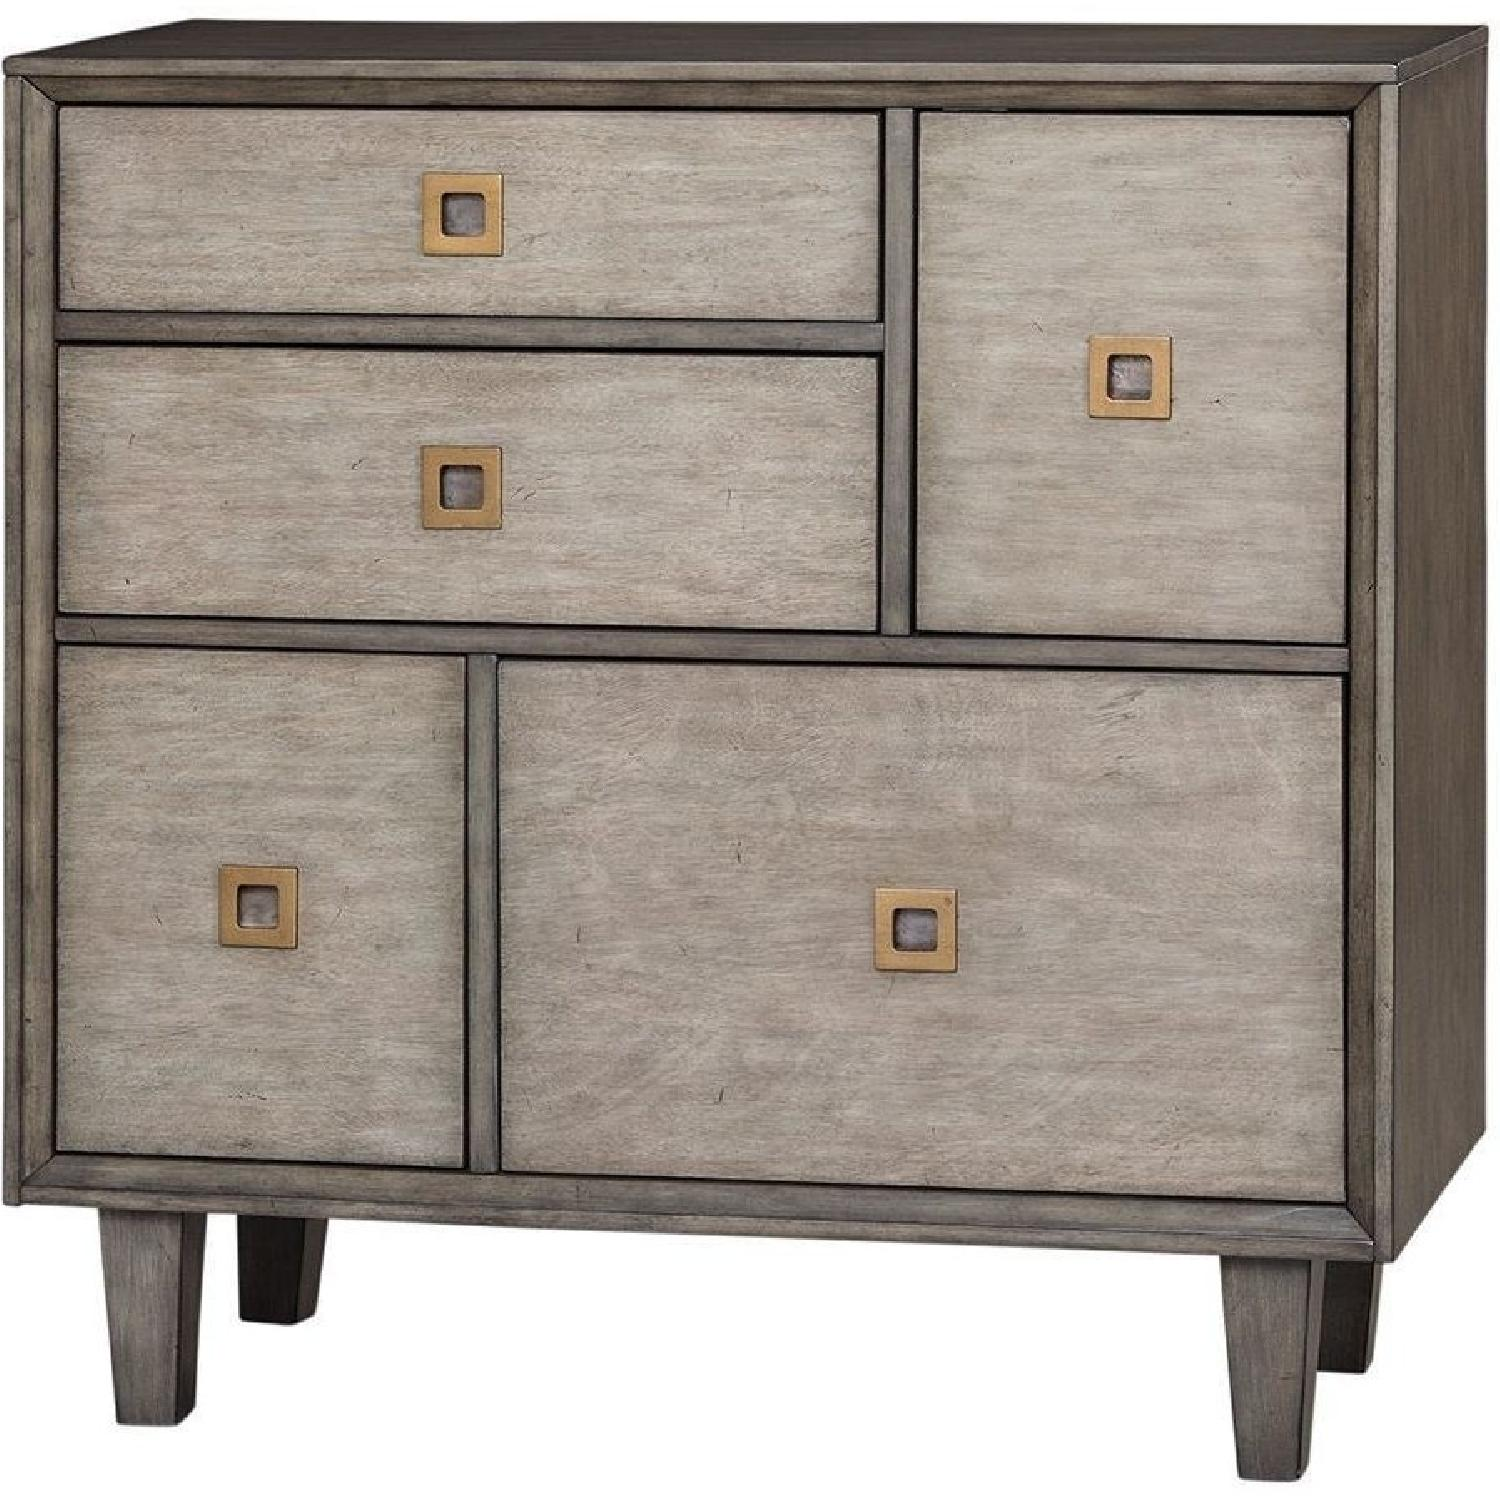 Wood Accent Cabinet in Weathered Grey w/ Brass Accent